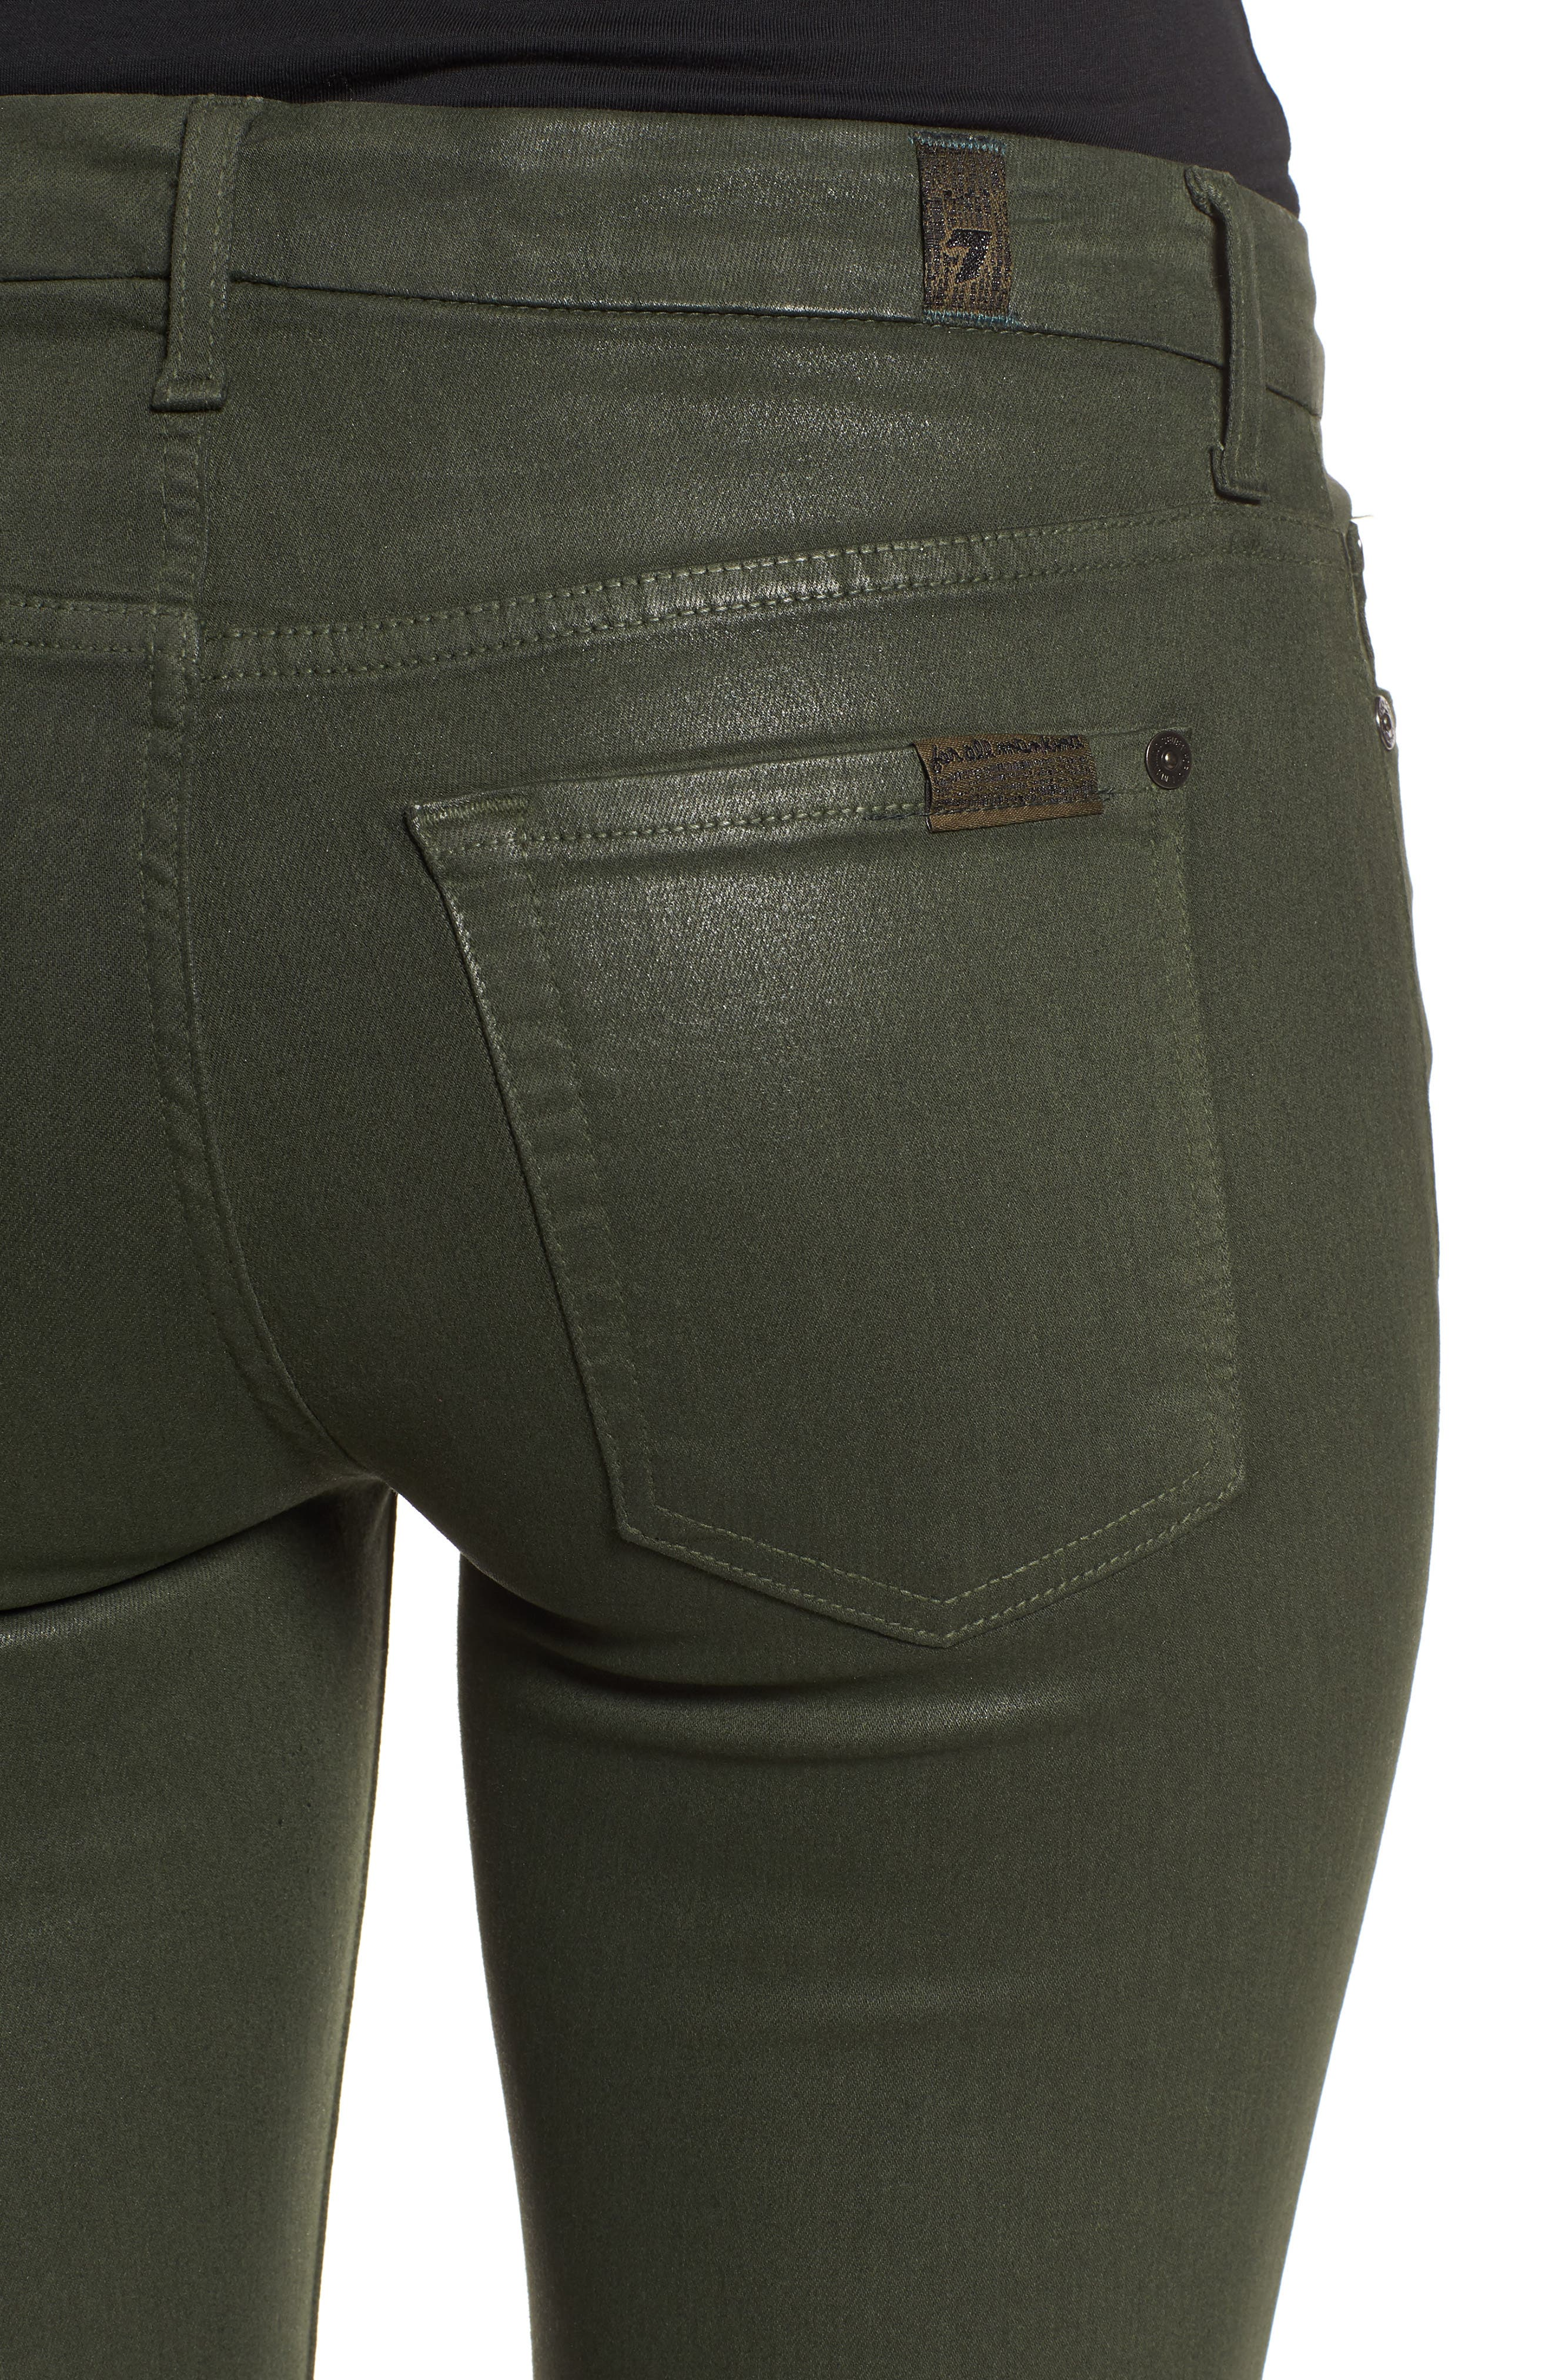 Coated Ankle Skinny Jeans,                             Alternate thumbnail 4, color,                             COATED MOSS GREEN